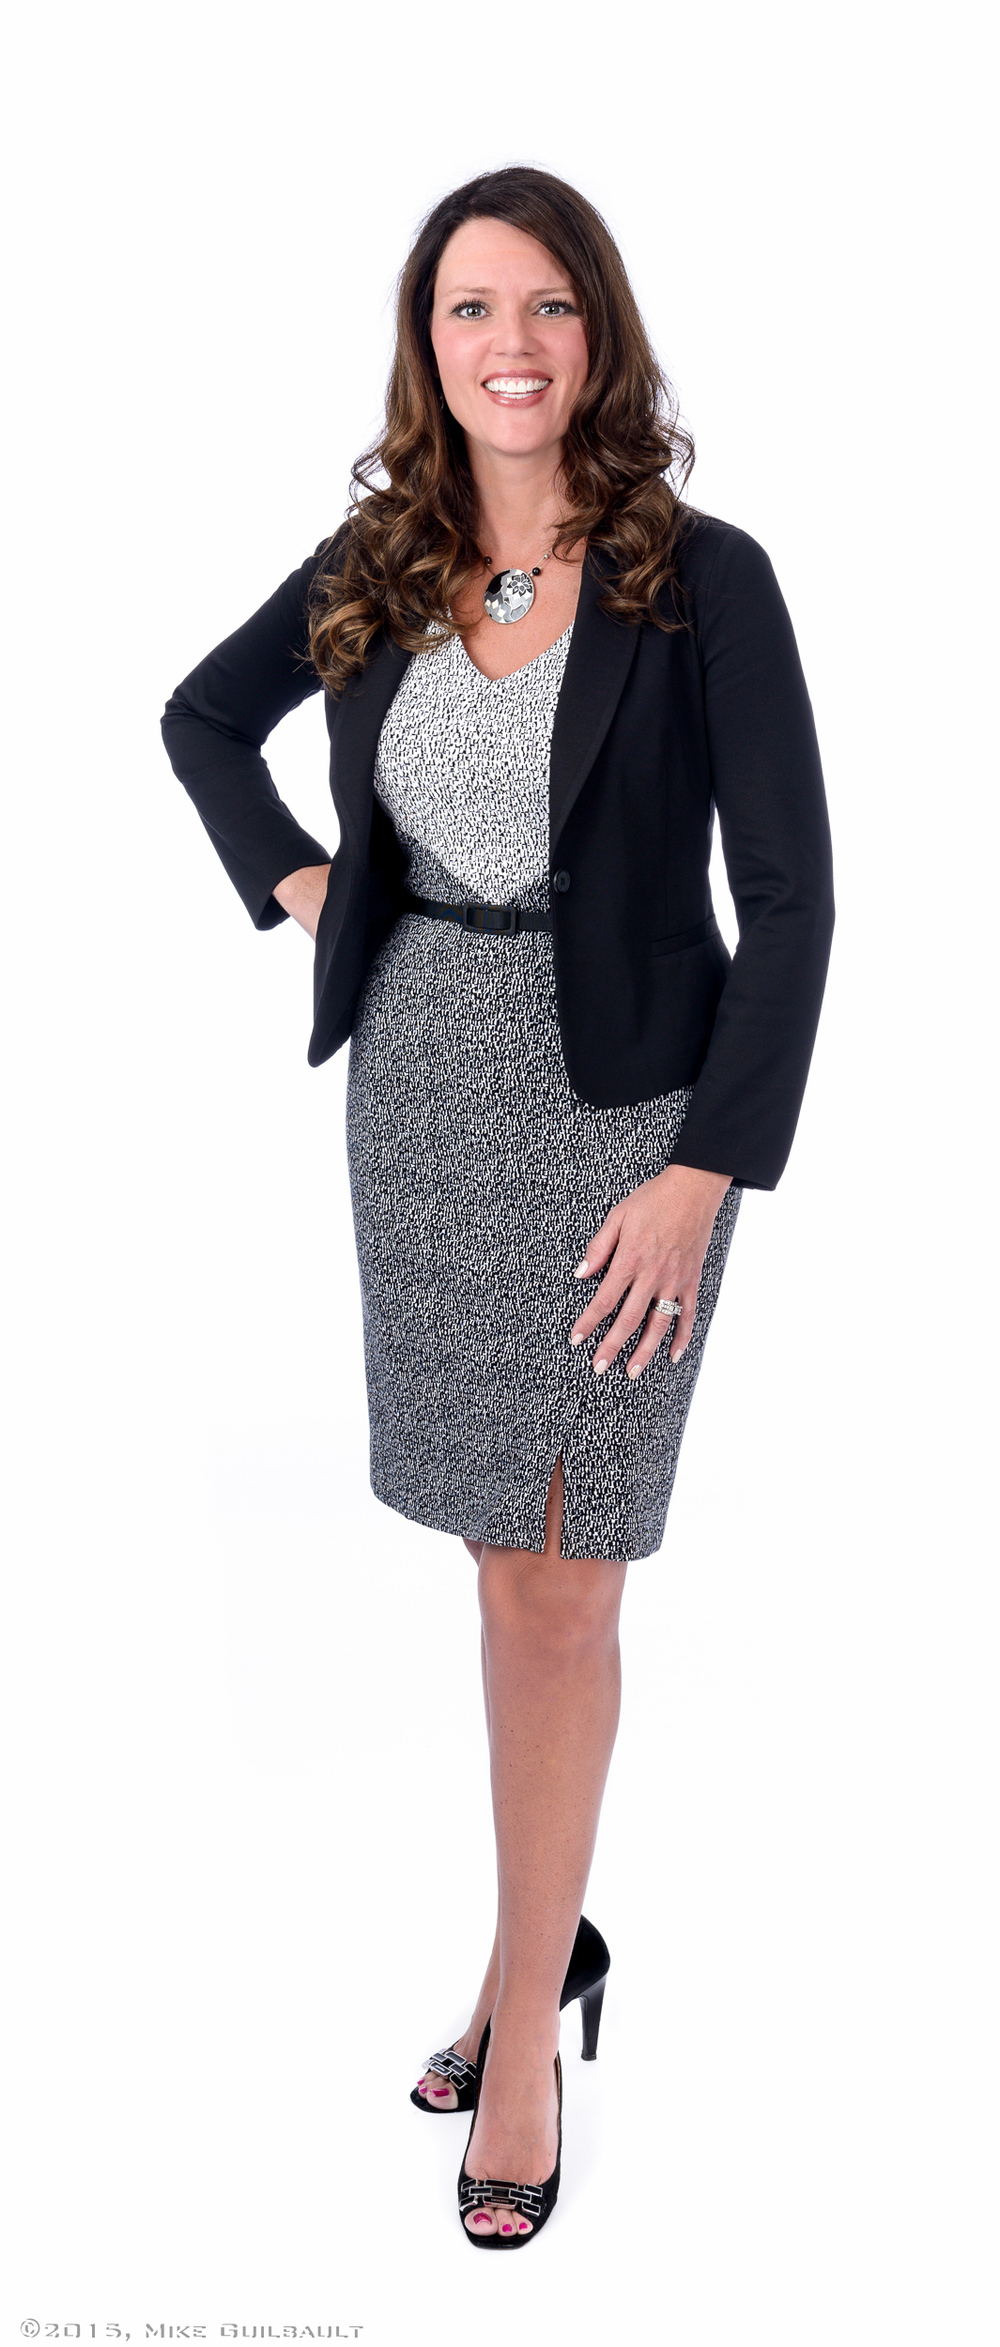 Full Length Business Portrait on White Seamless Background